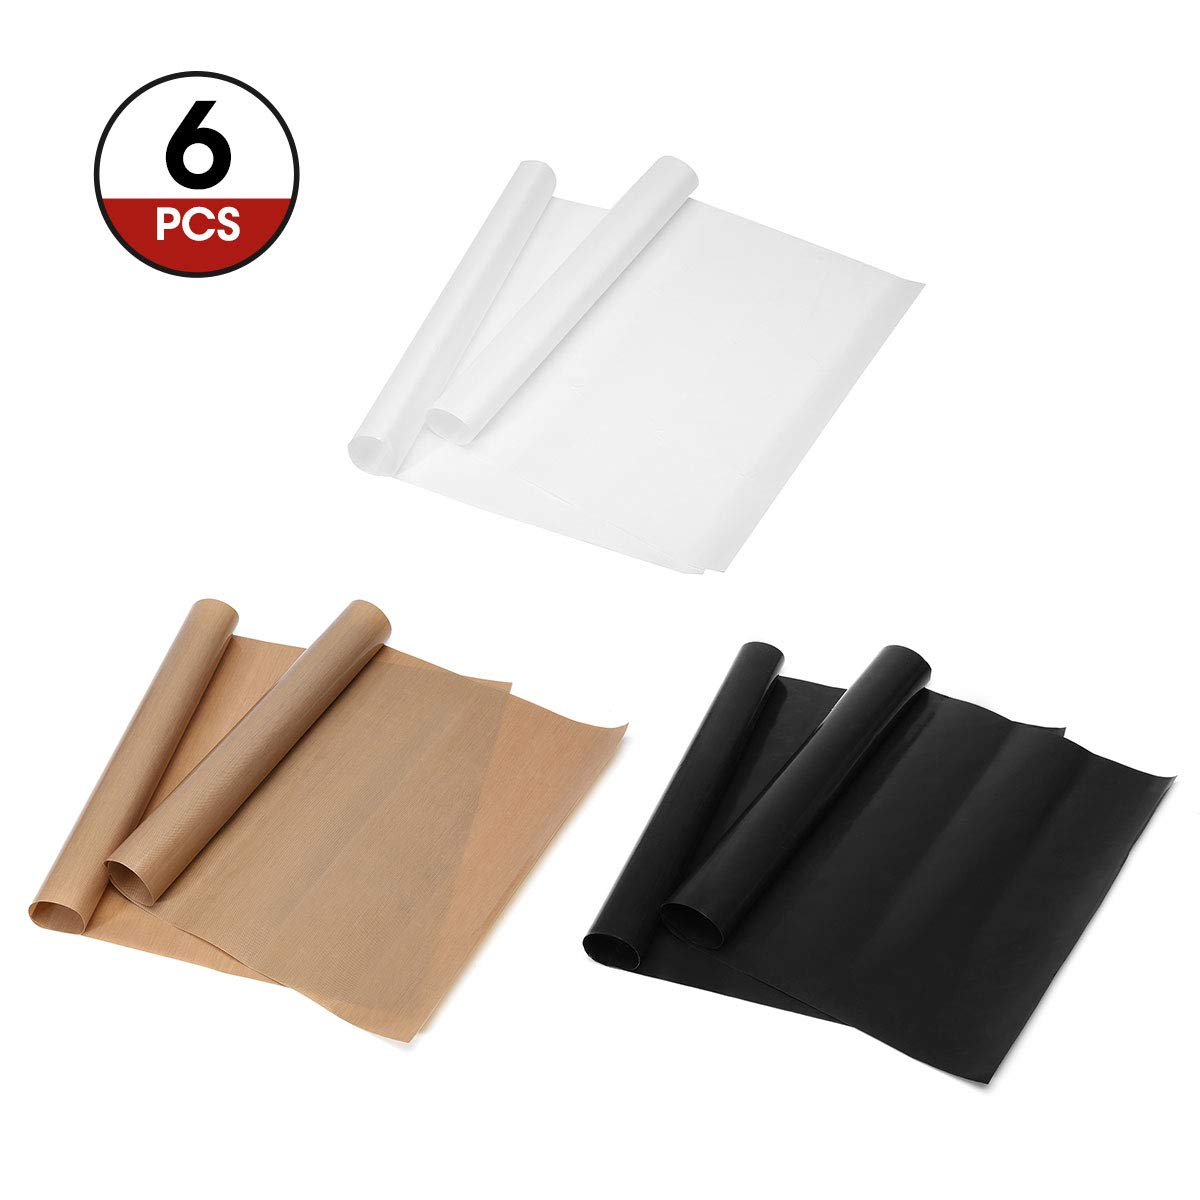 ARTISTORE 3 COLORS PTFE Teflon Sheets for Heat Press Transfers Sheet, 6 x 20'' Heat Resistant Craft Sheet 100% Non Stick Protects Iron and Work Area 6 PACK ARTISTOREweodogkw48